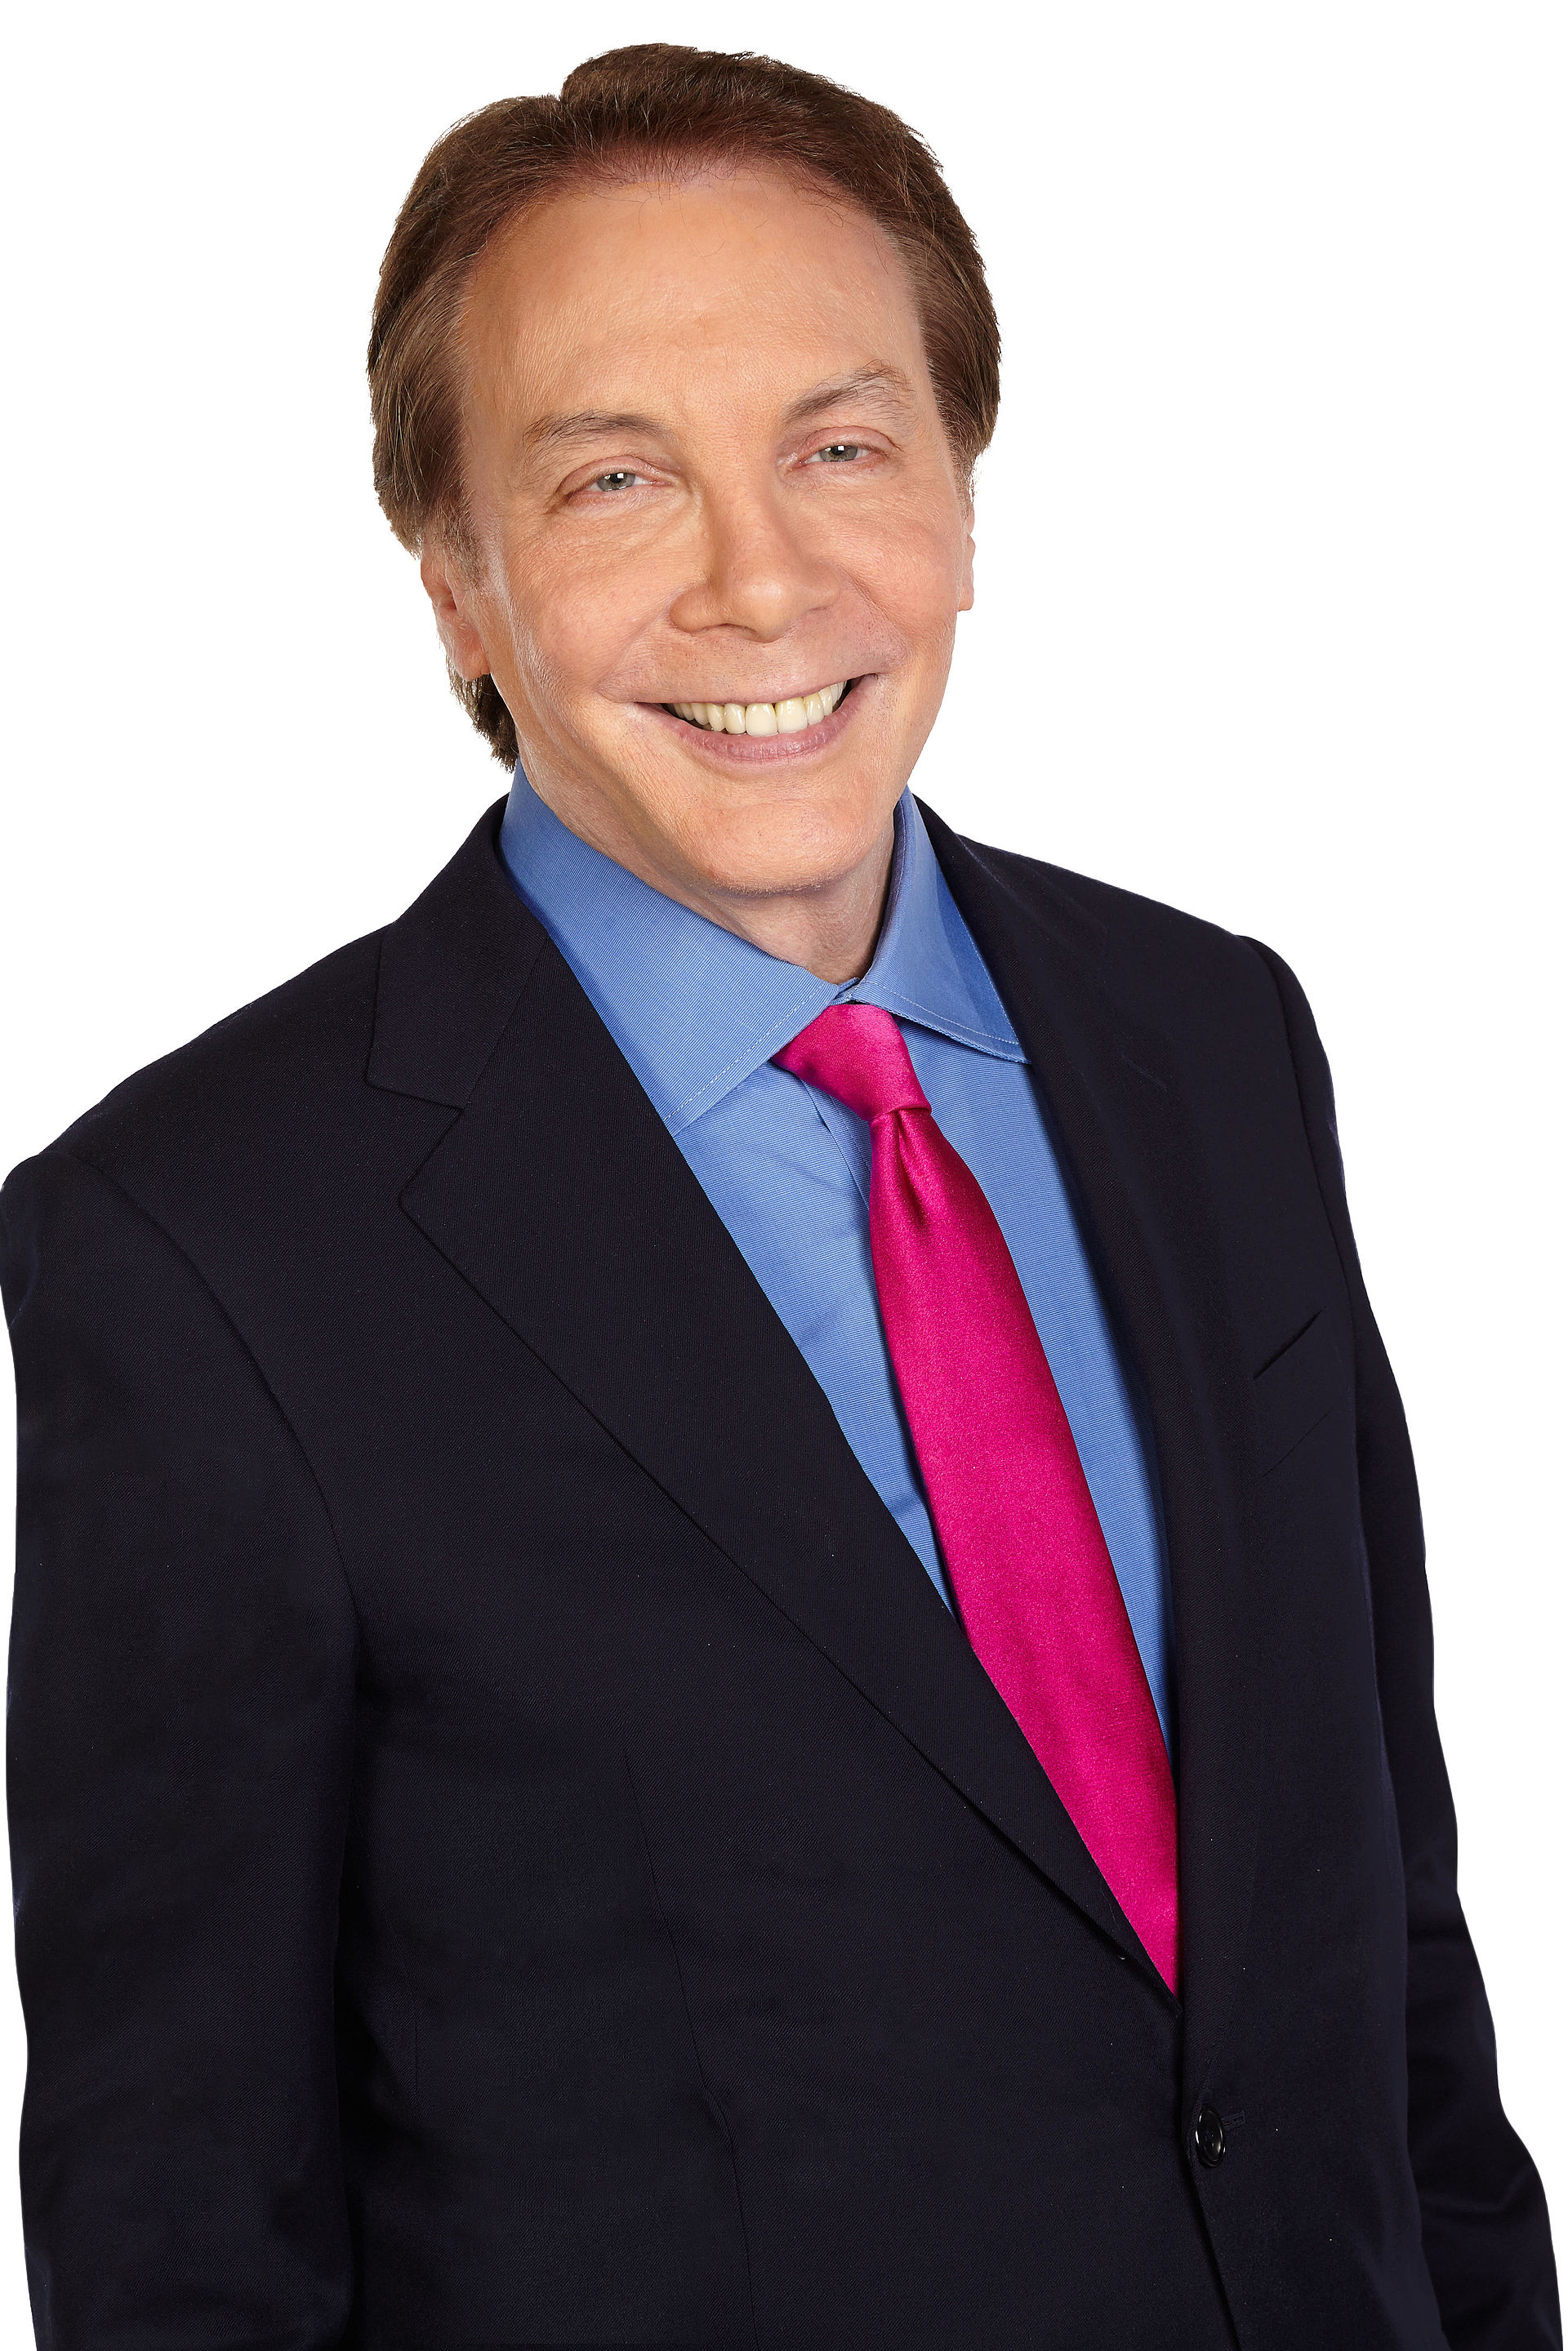 alan colmes wikipedia. Black Bedroom Furniture Sets. Home Design Ideas